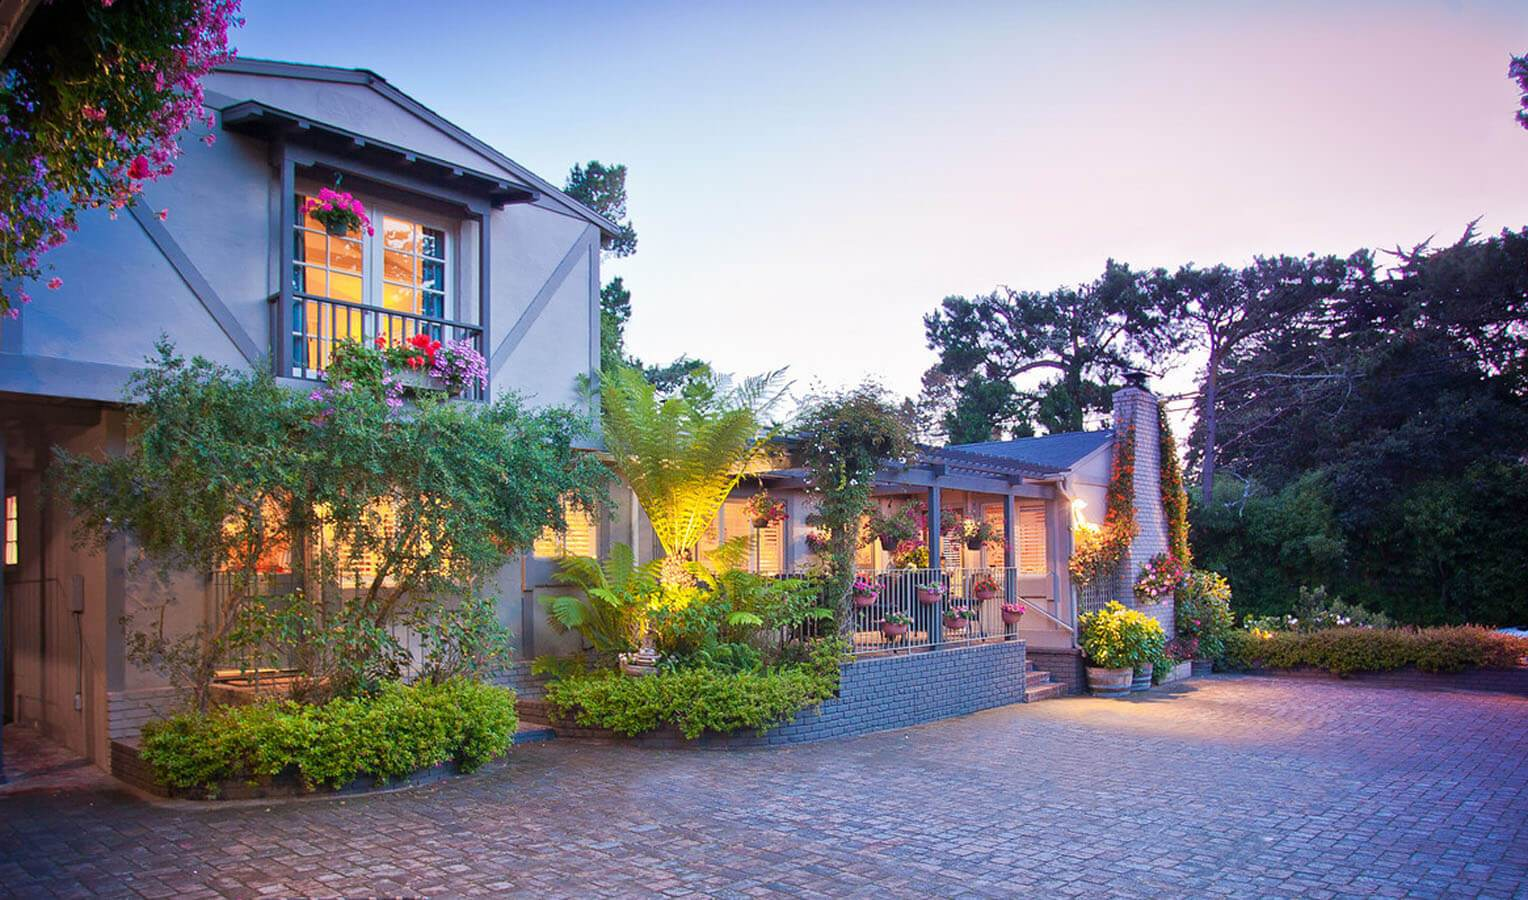 See the best of Carmel from our charming Carmel bed and breakfast